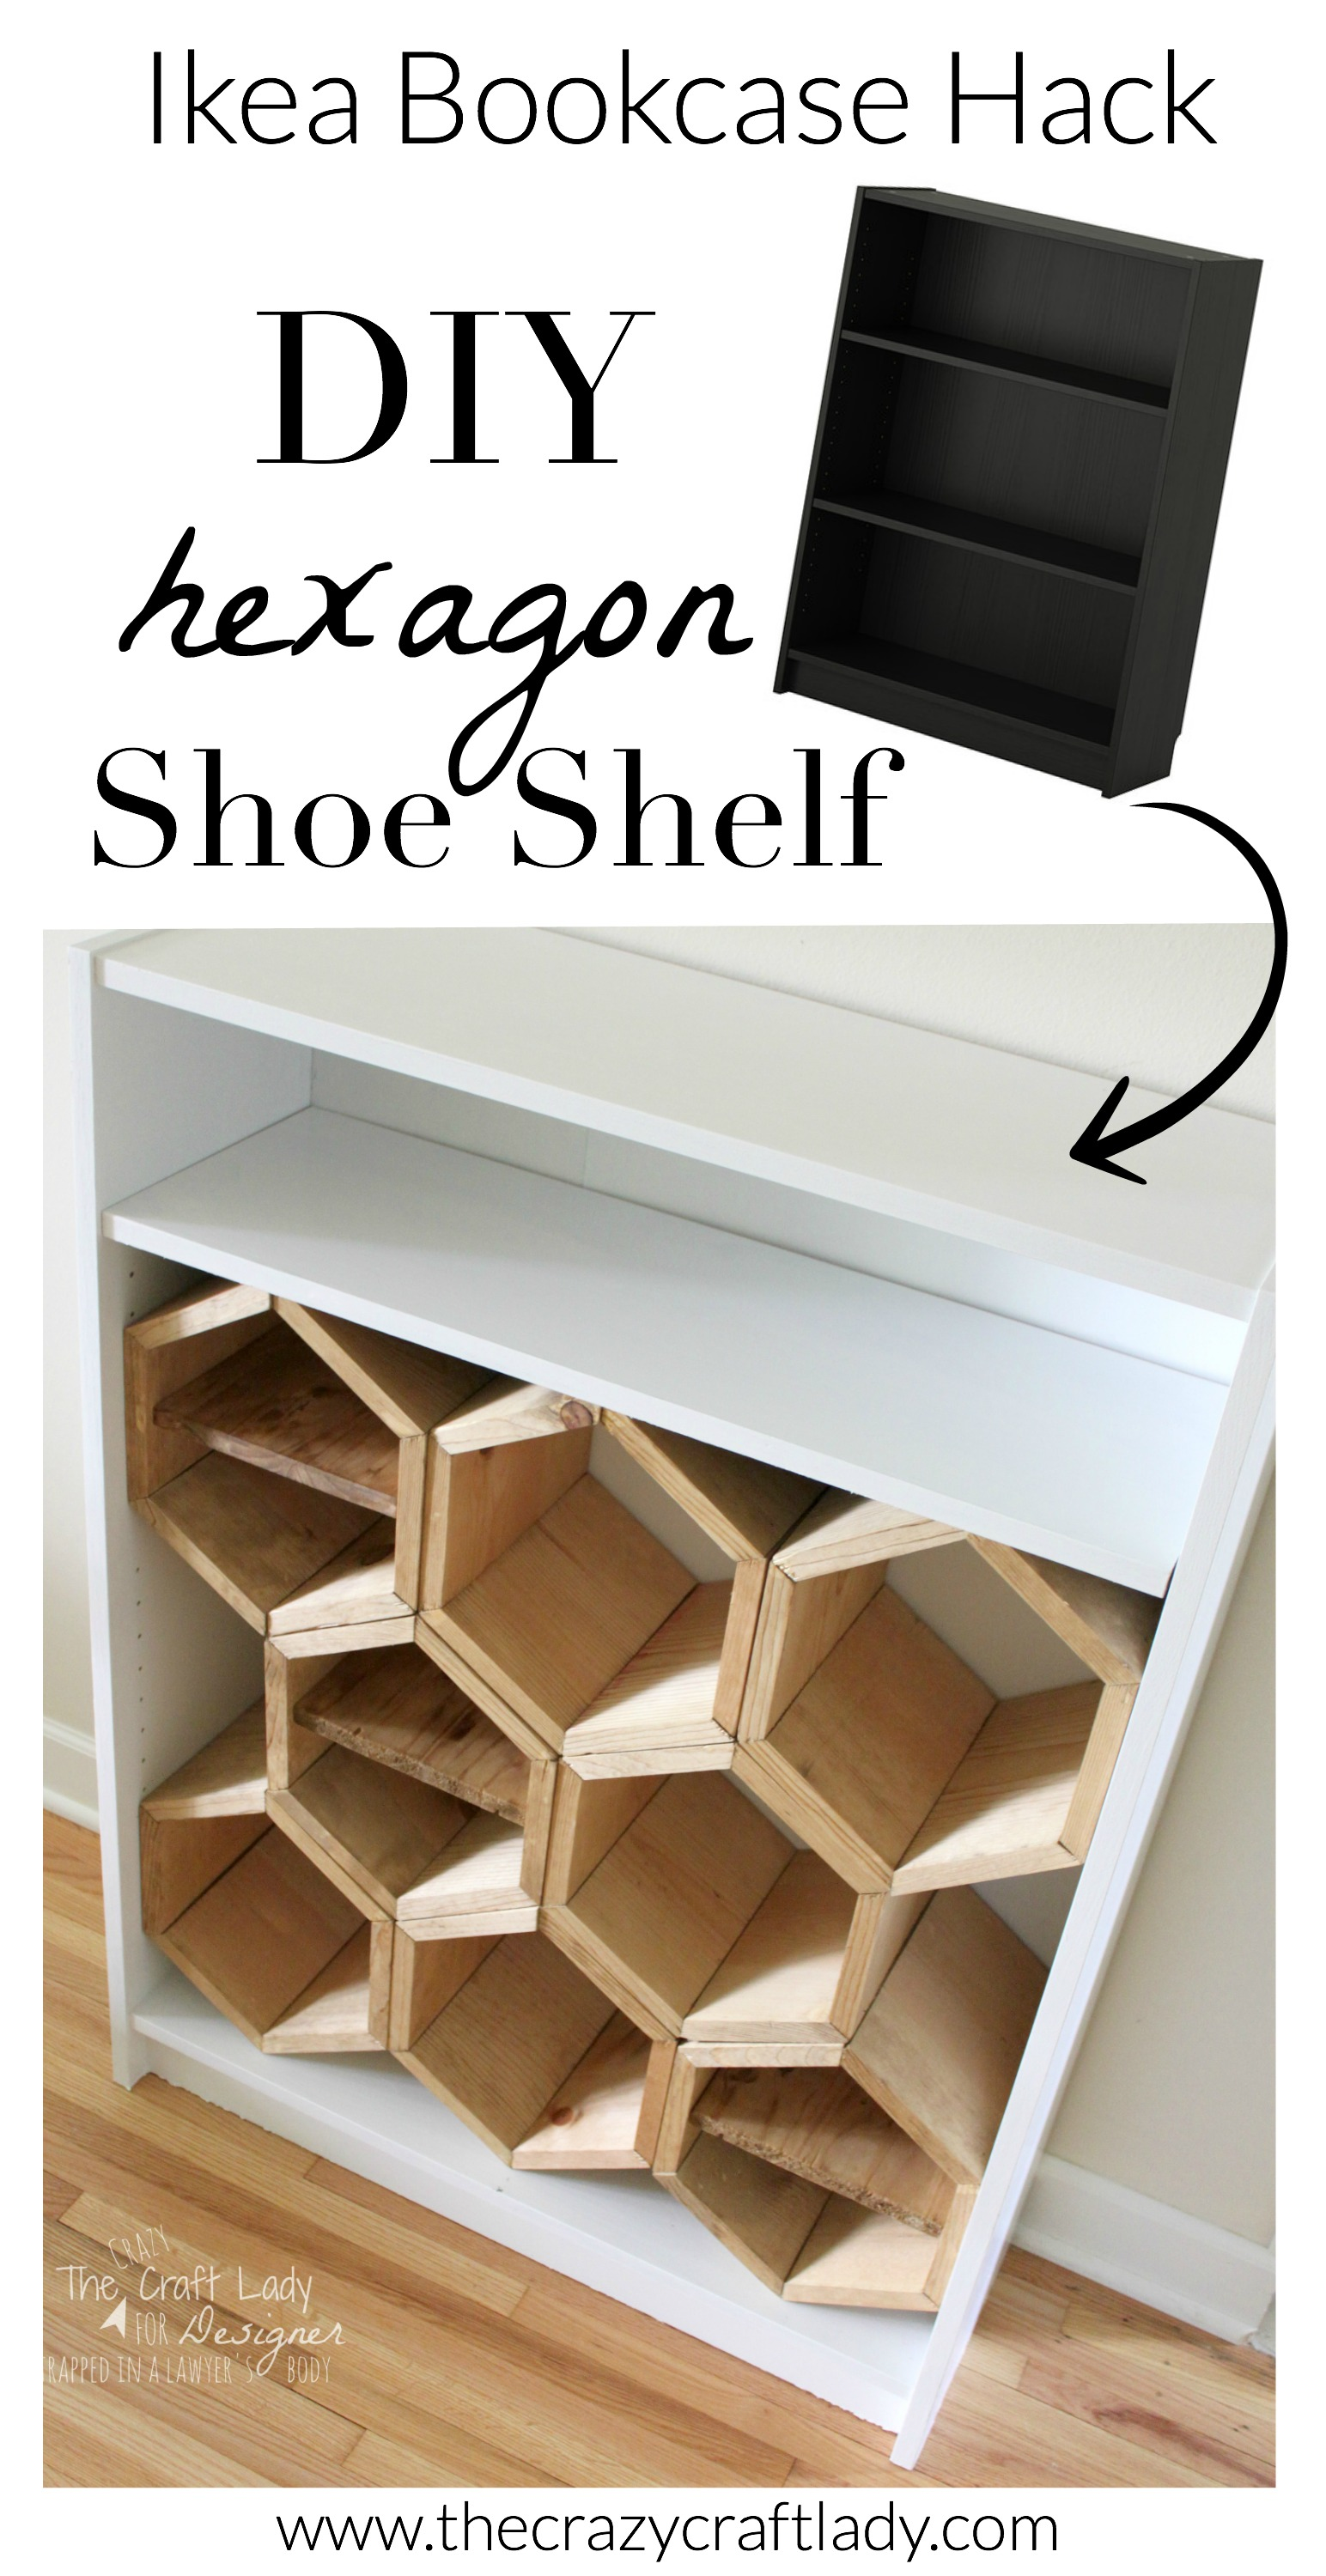 DIY Hexagon Shoe Shelf  A Guest Post  The Crazy Craft Lady